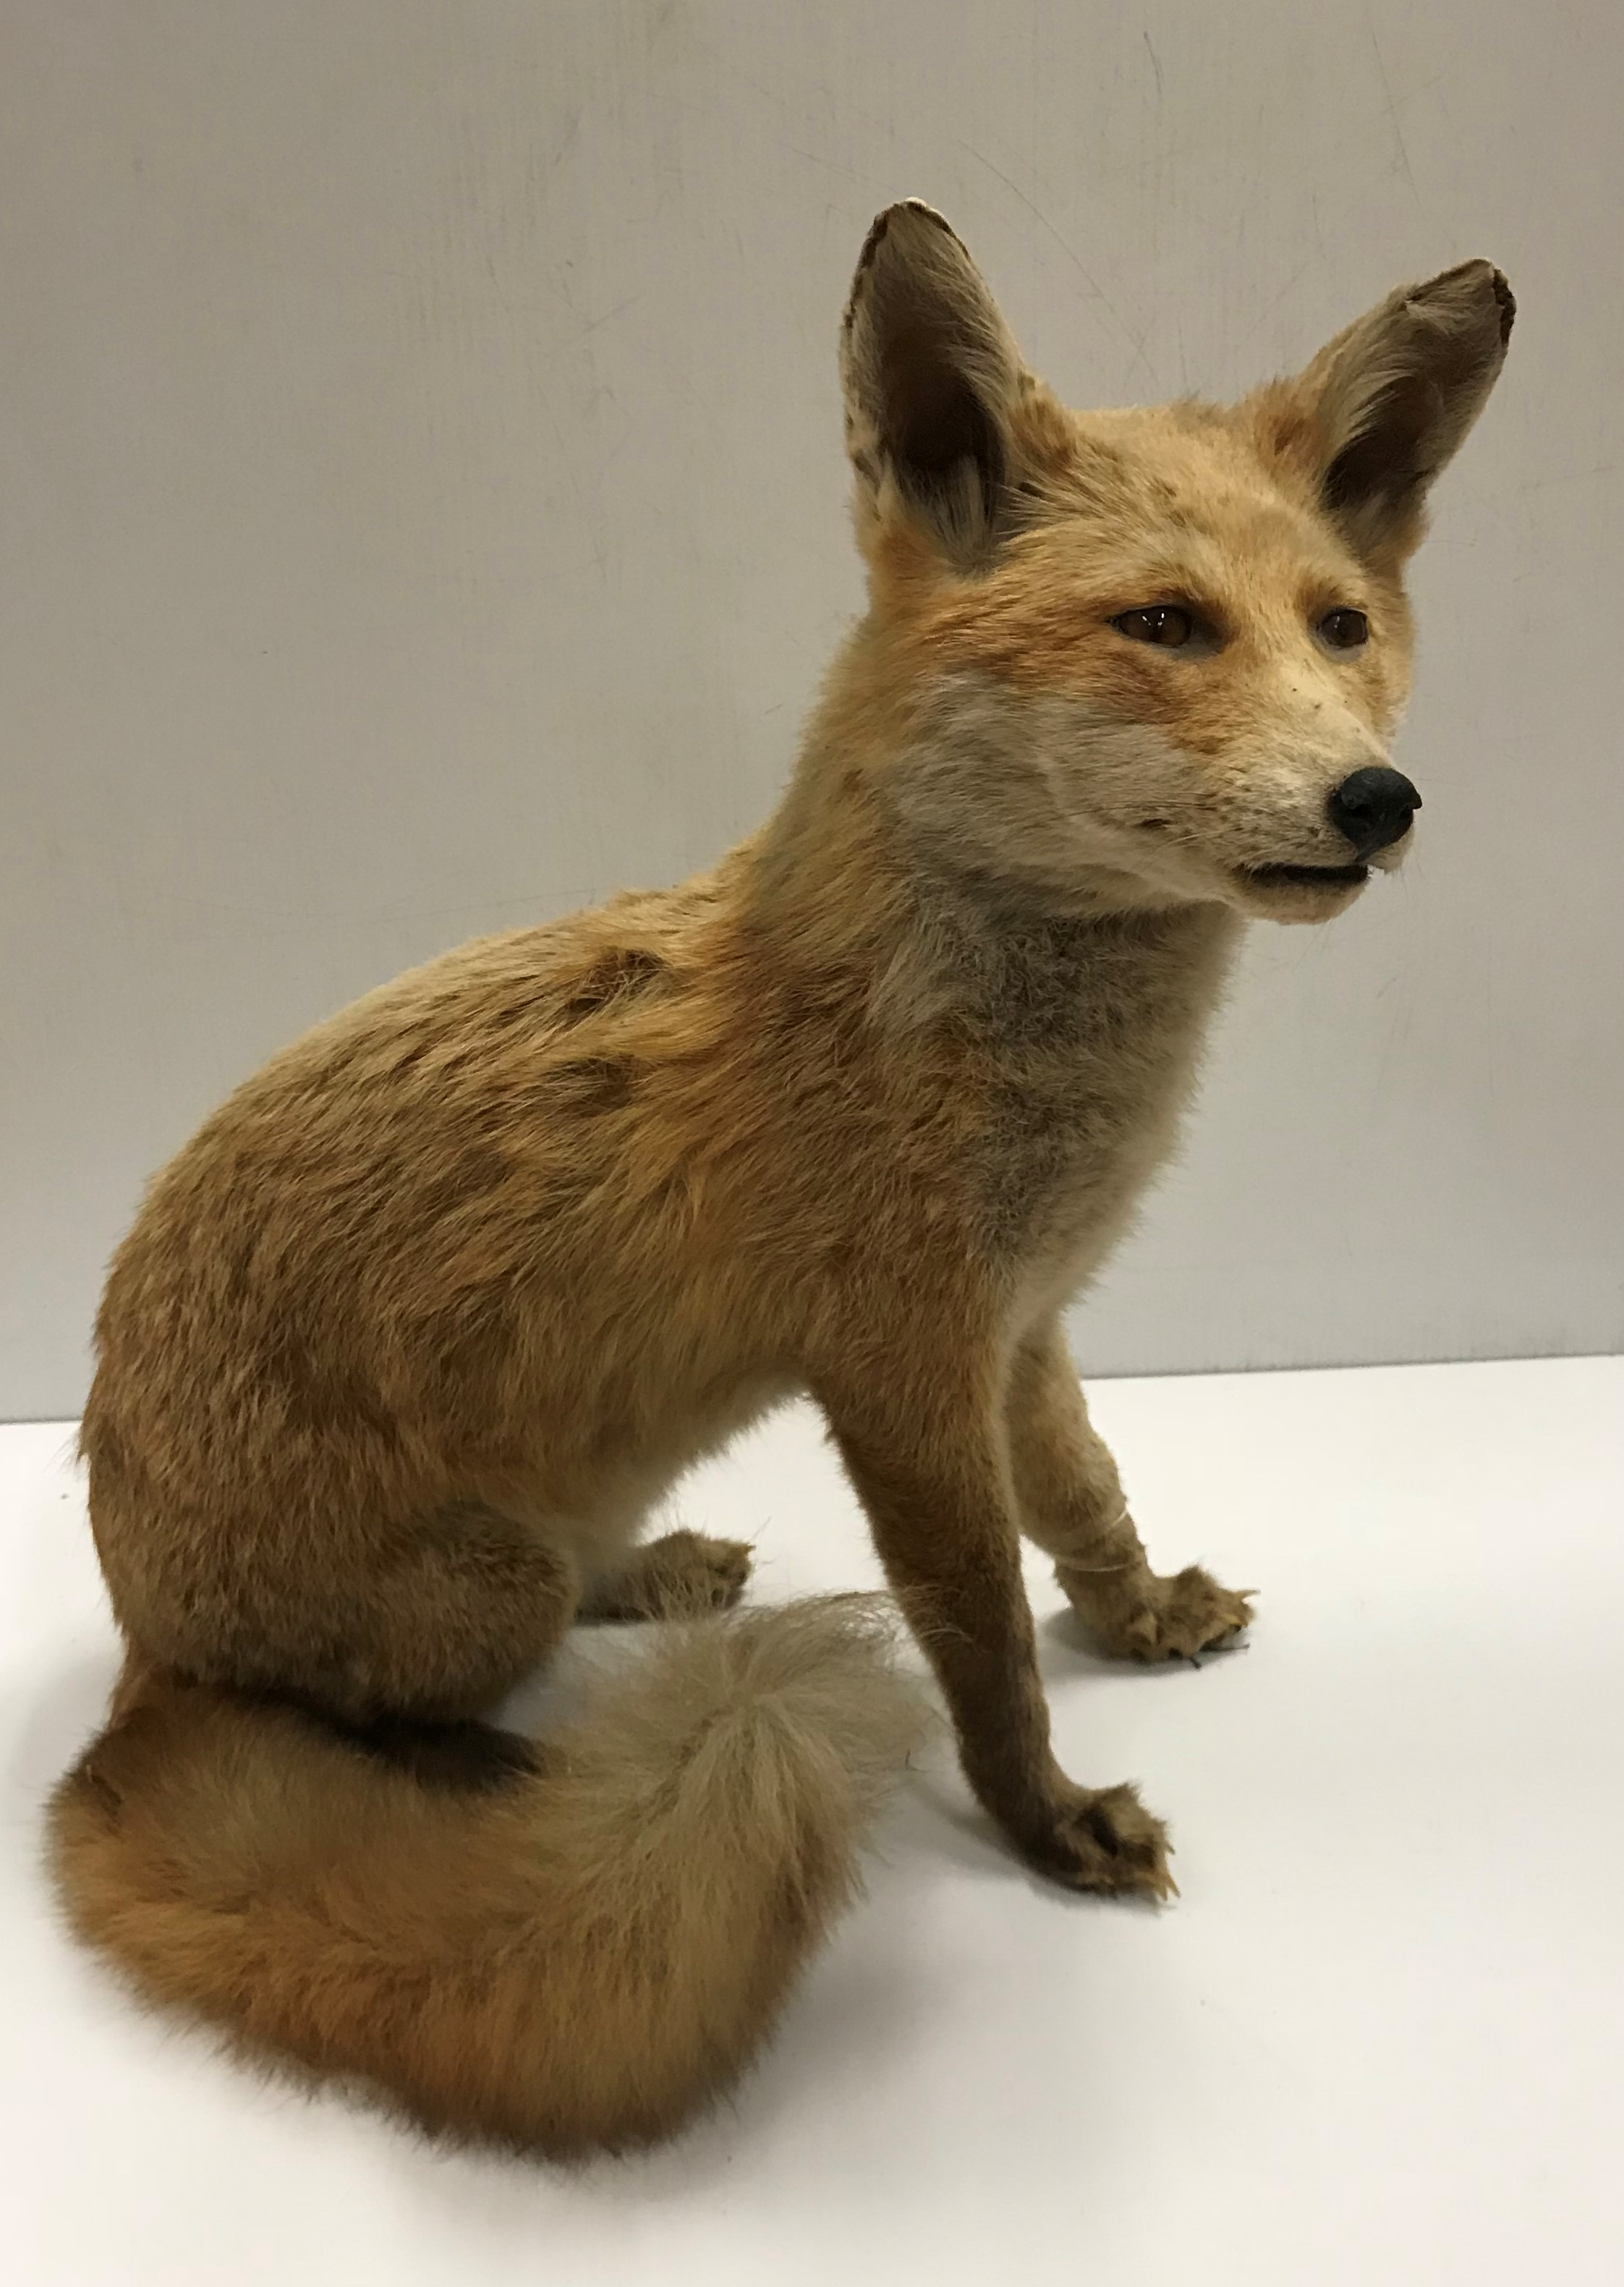 A taxidermy stuffed and mounted Juvenile Fox in seated position 36 cm long x 48.5 cm high